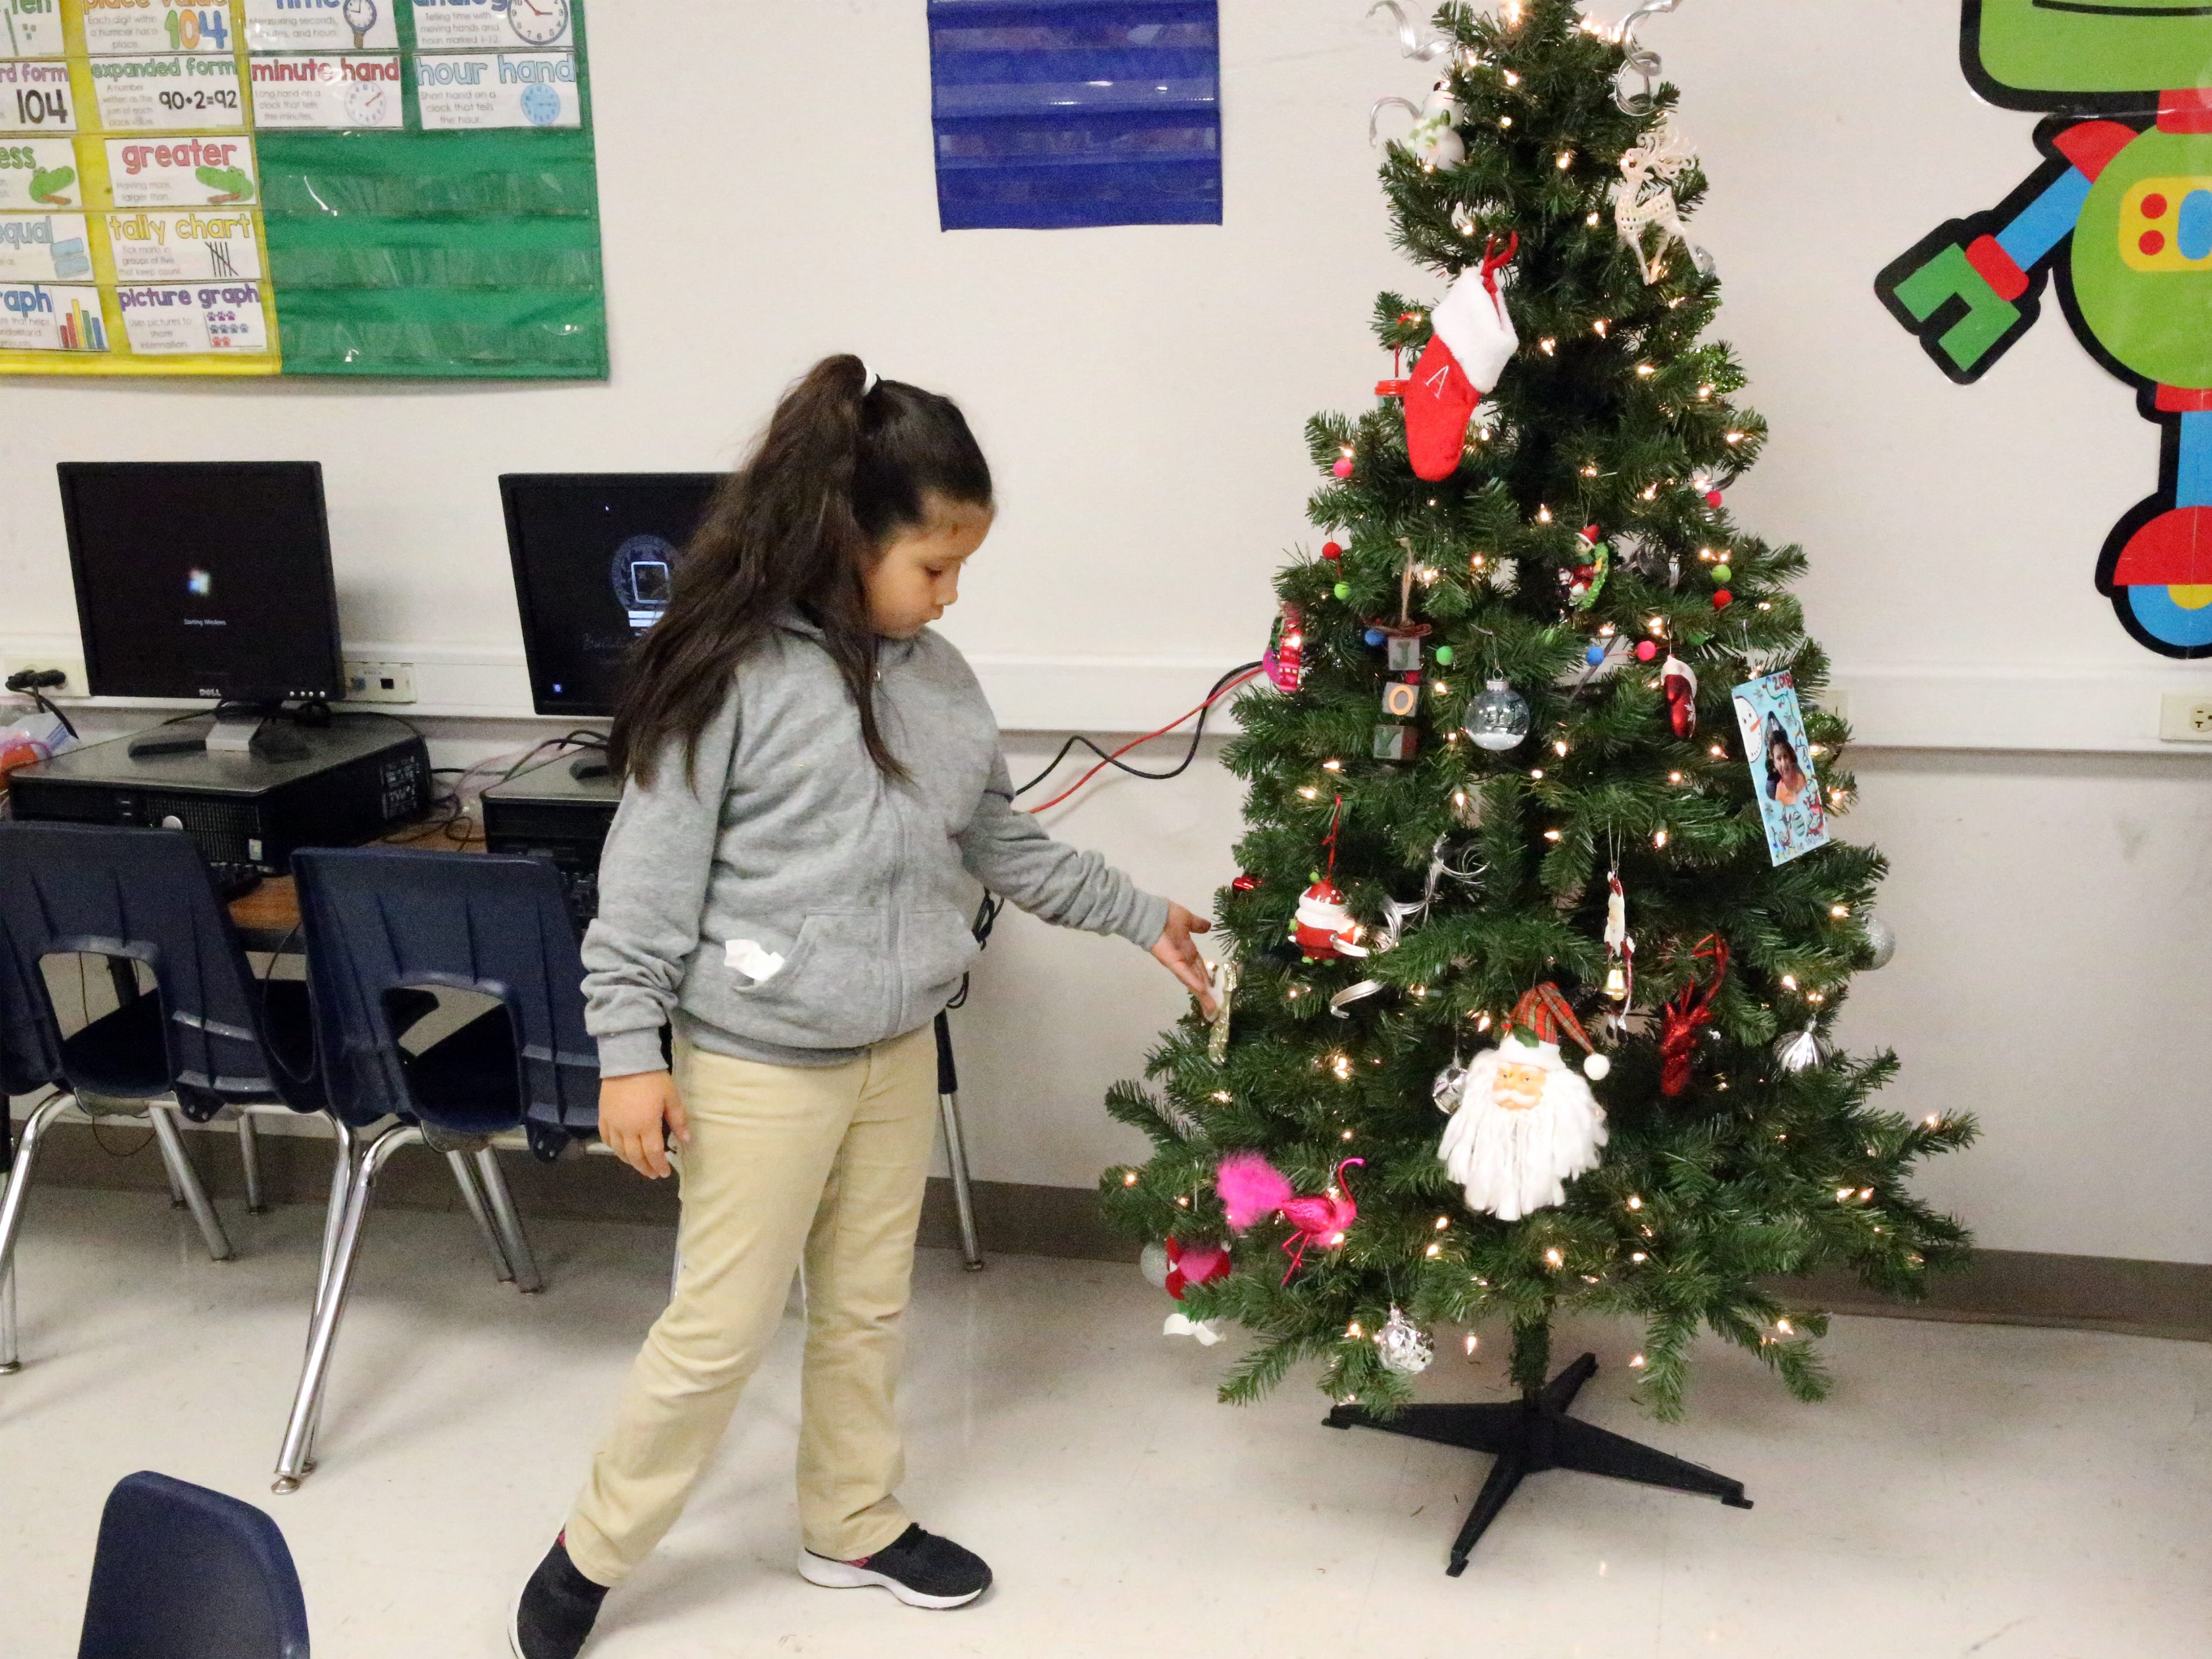 Jacquelynne Chavez looks at the classroom Christmas tree.